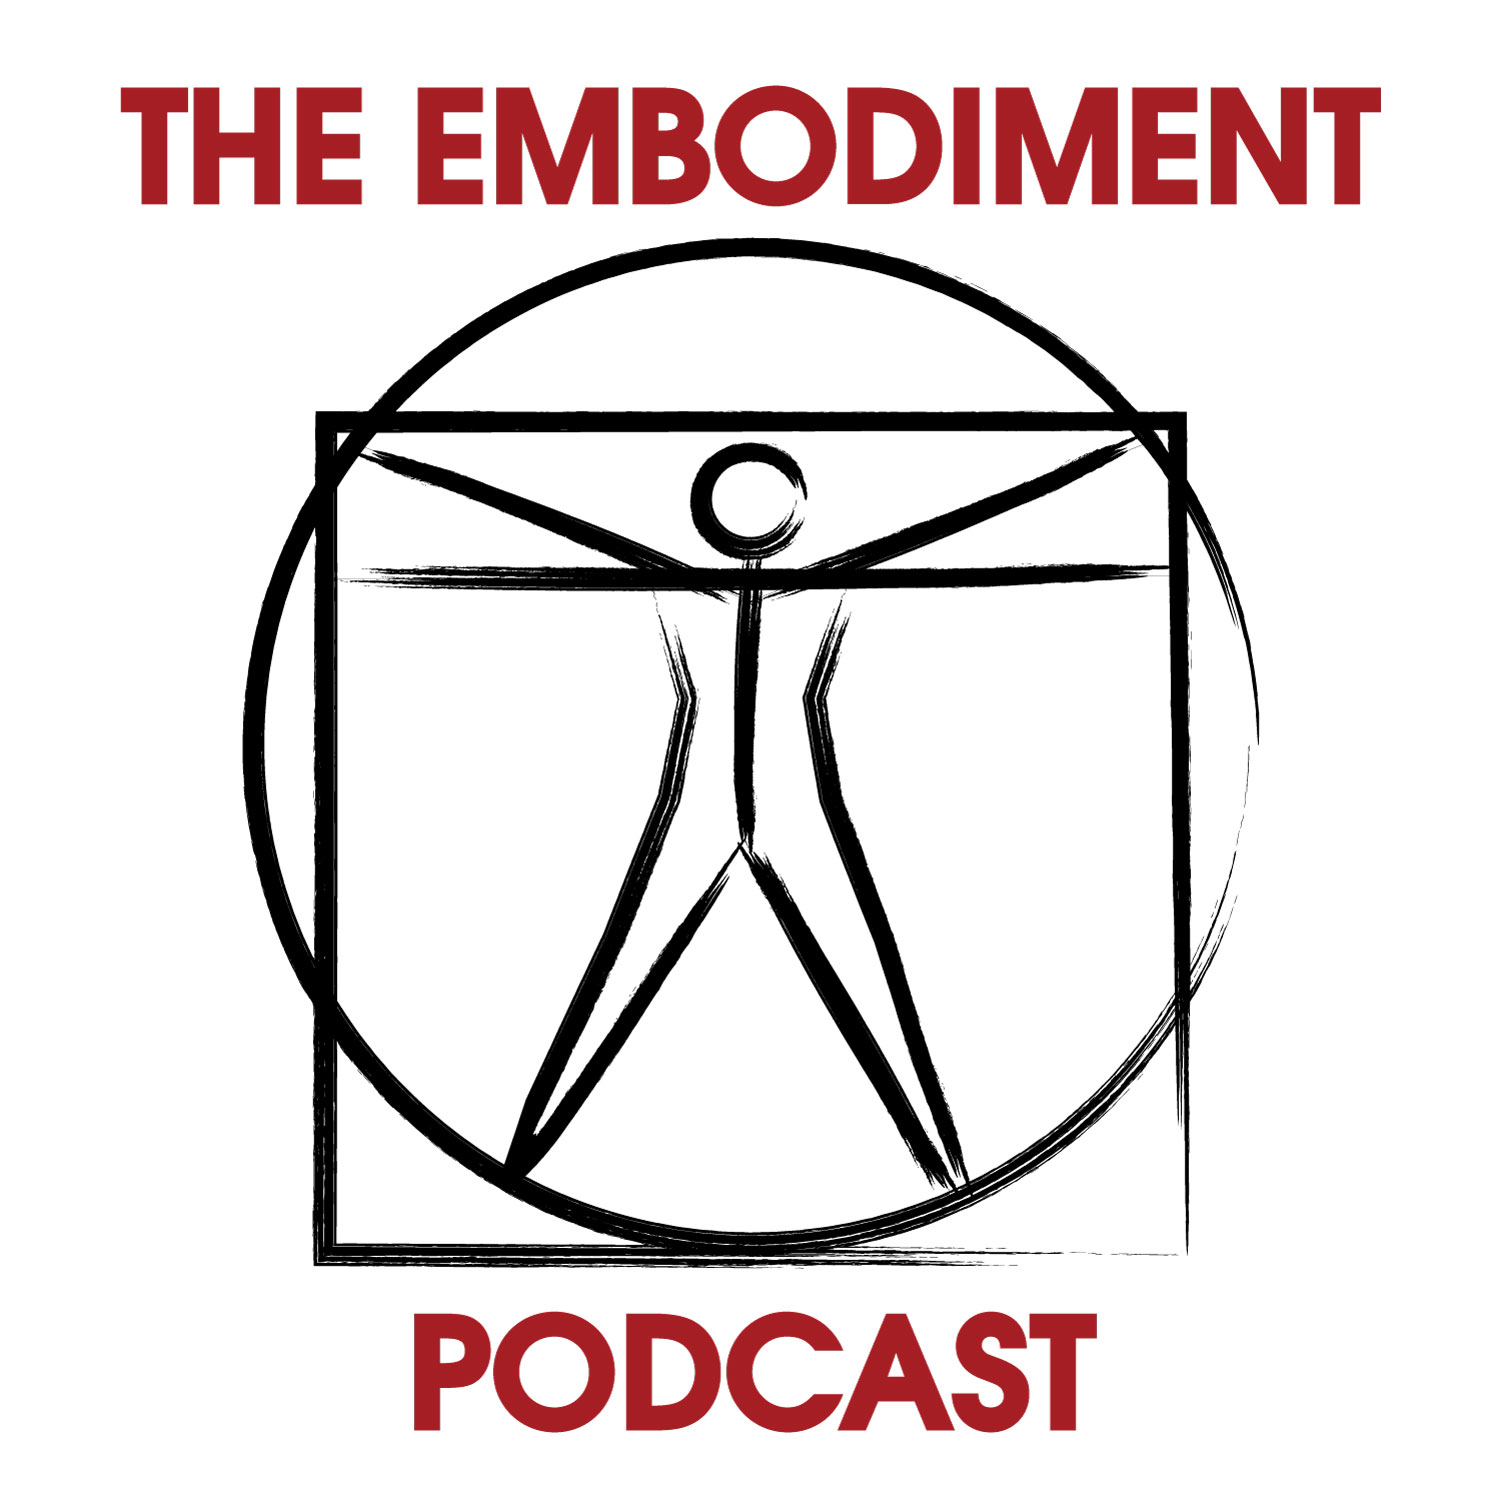 The Embodiment Podcast show art